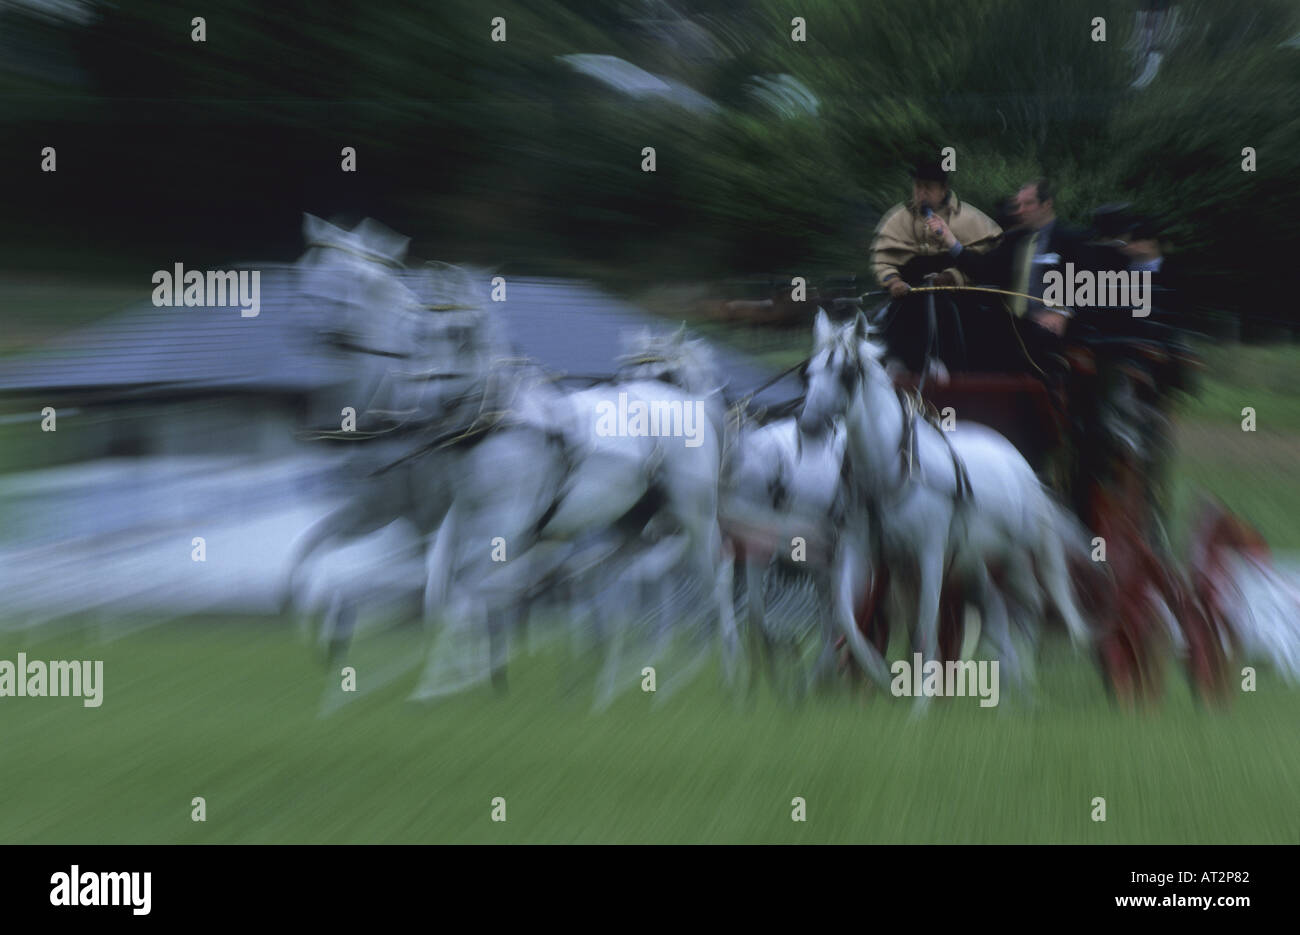 Royal Welsh Bvilth Wales United Kingdom - Stock Image